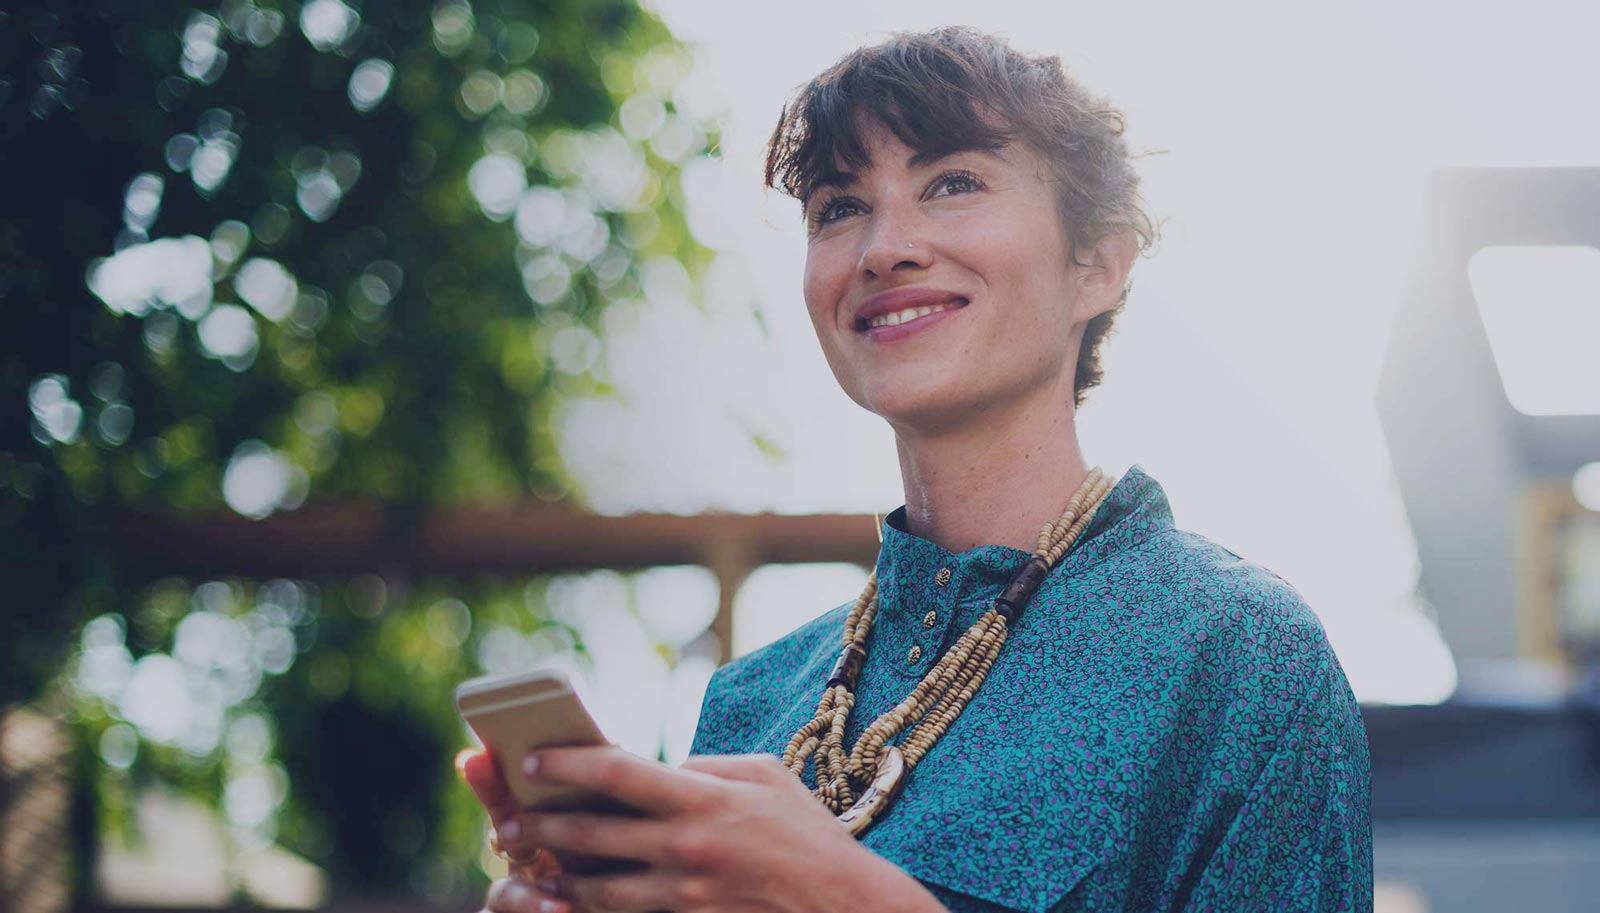 woman-on-smartphone-smiling